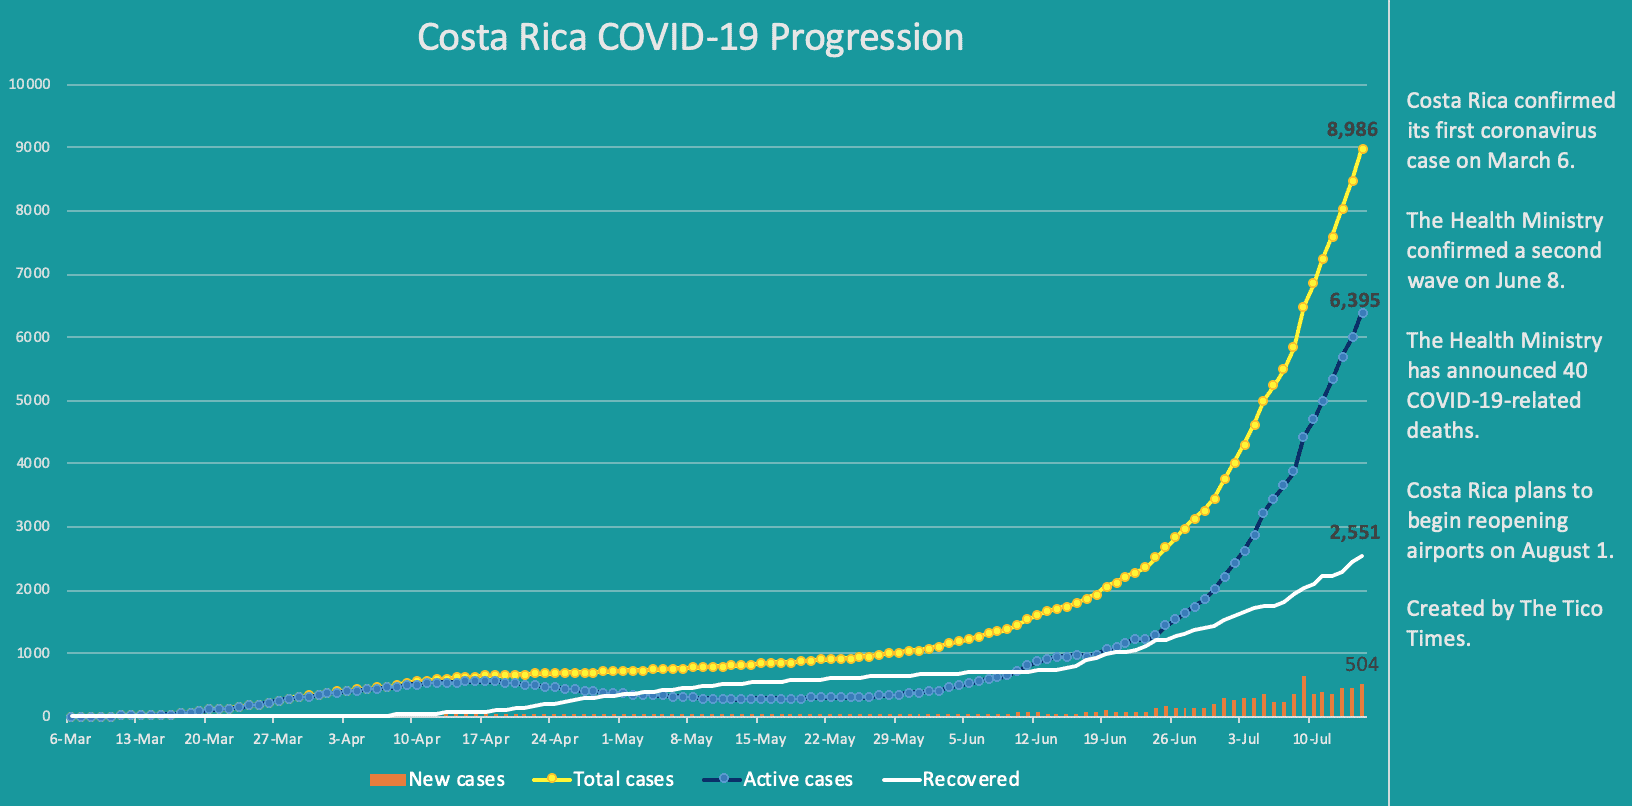 Costa Rica coronavirus data on July 15, 2020